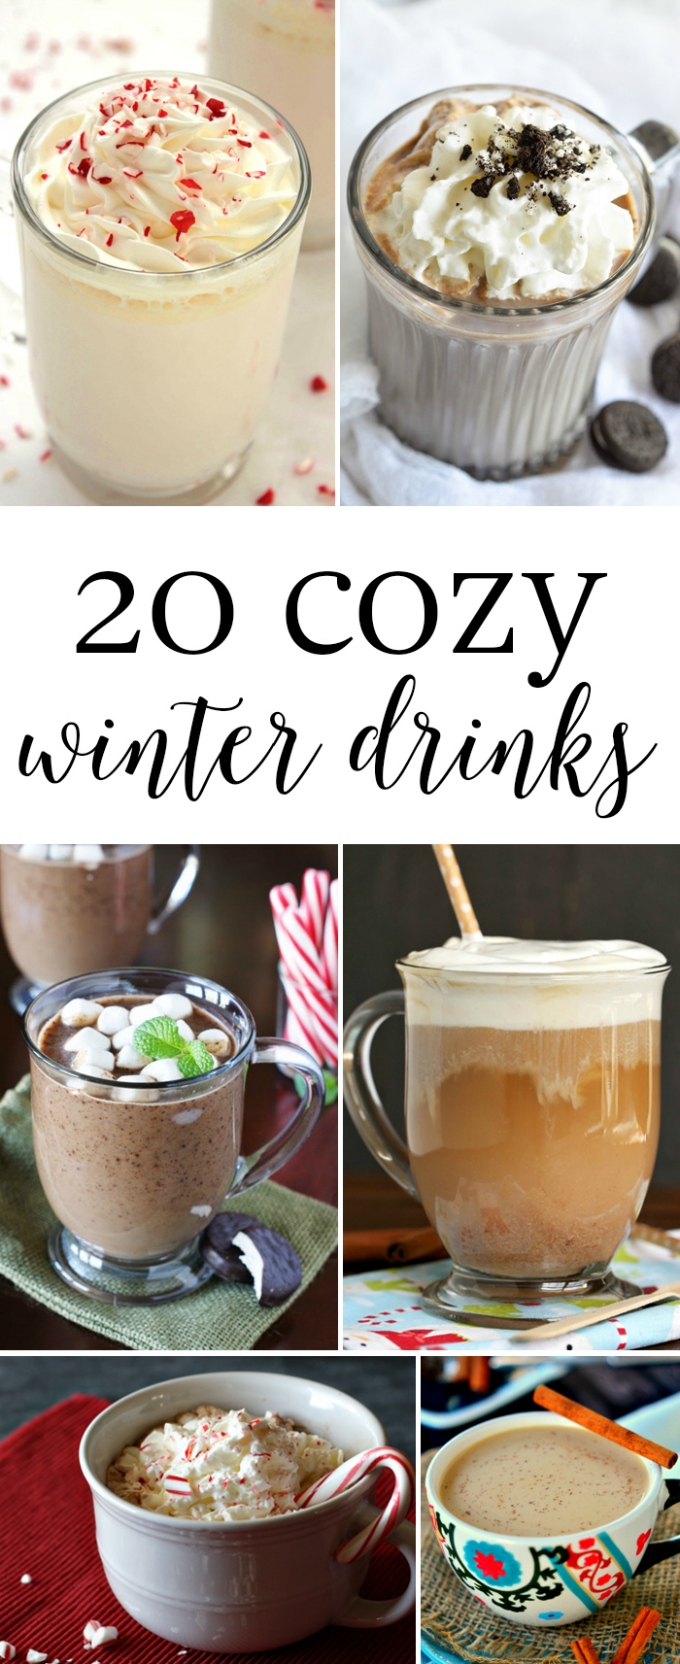 20 Cozy Winter Drinks